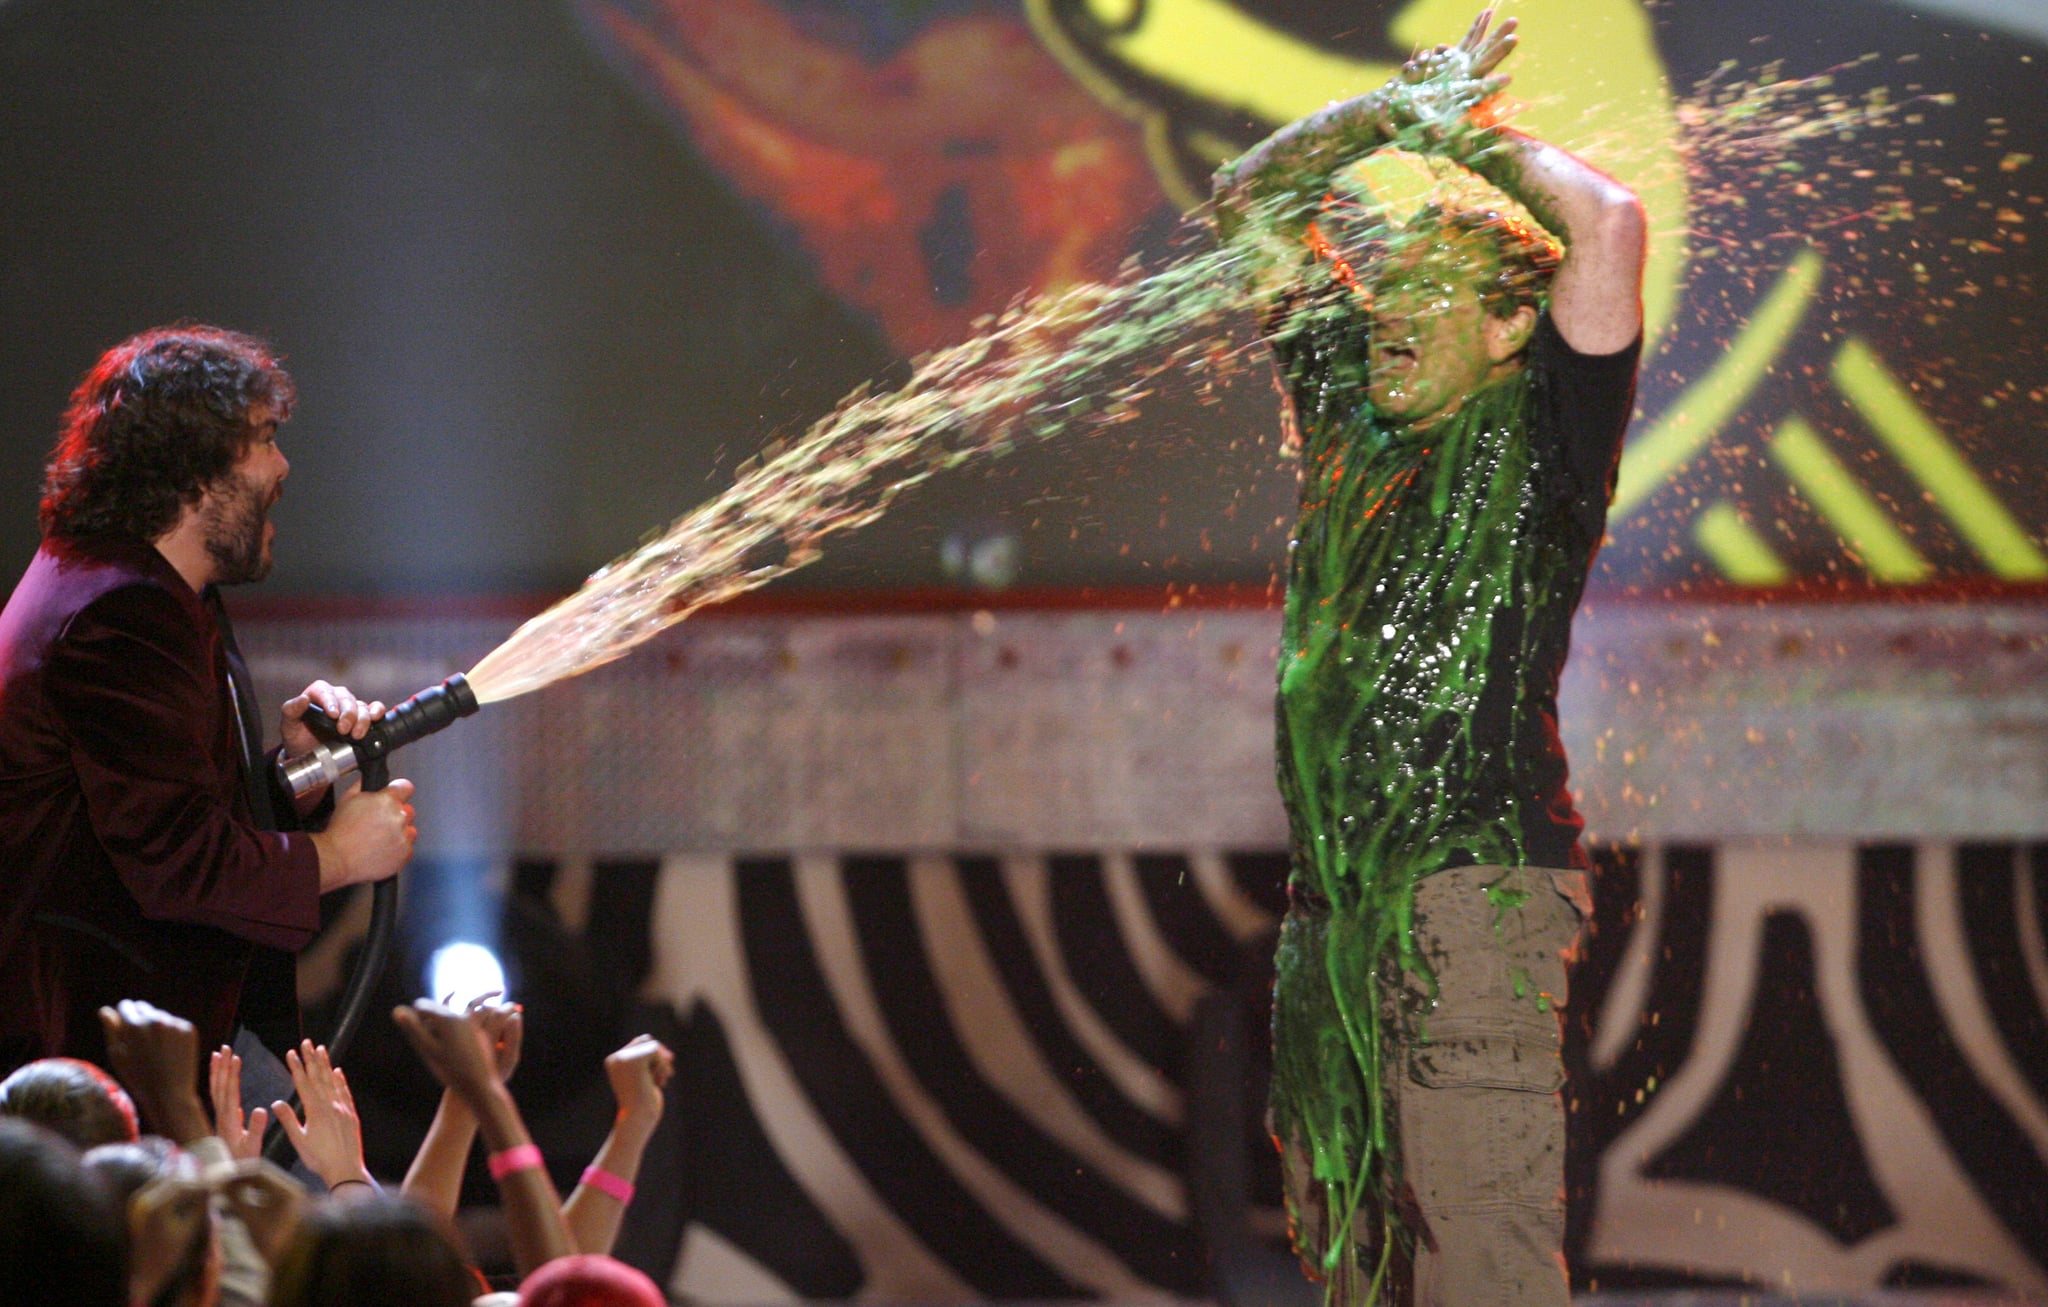 He got slimed on stage by Jack Black at the Kids' Choice Awards in April 2006.